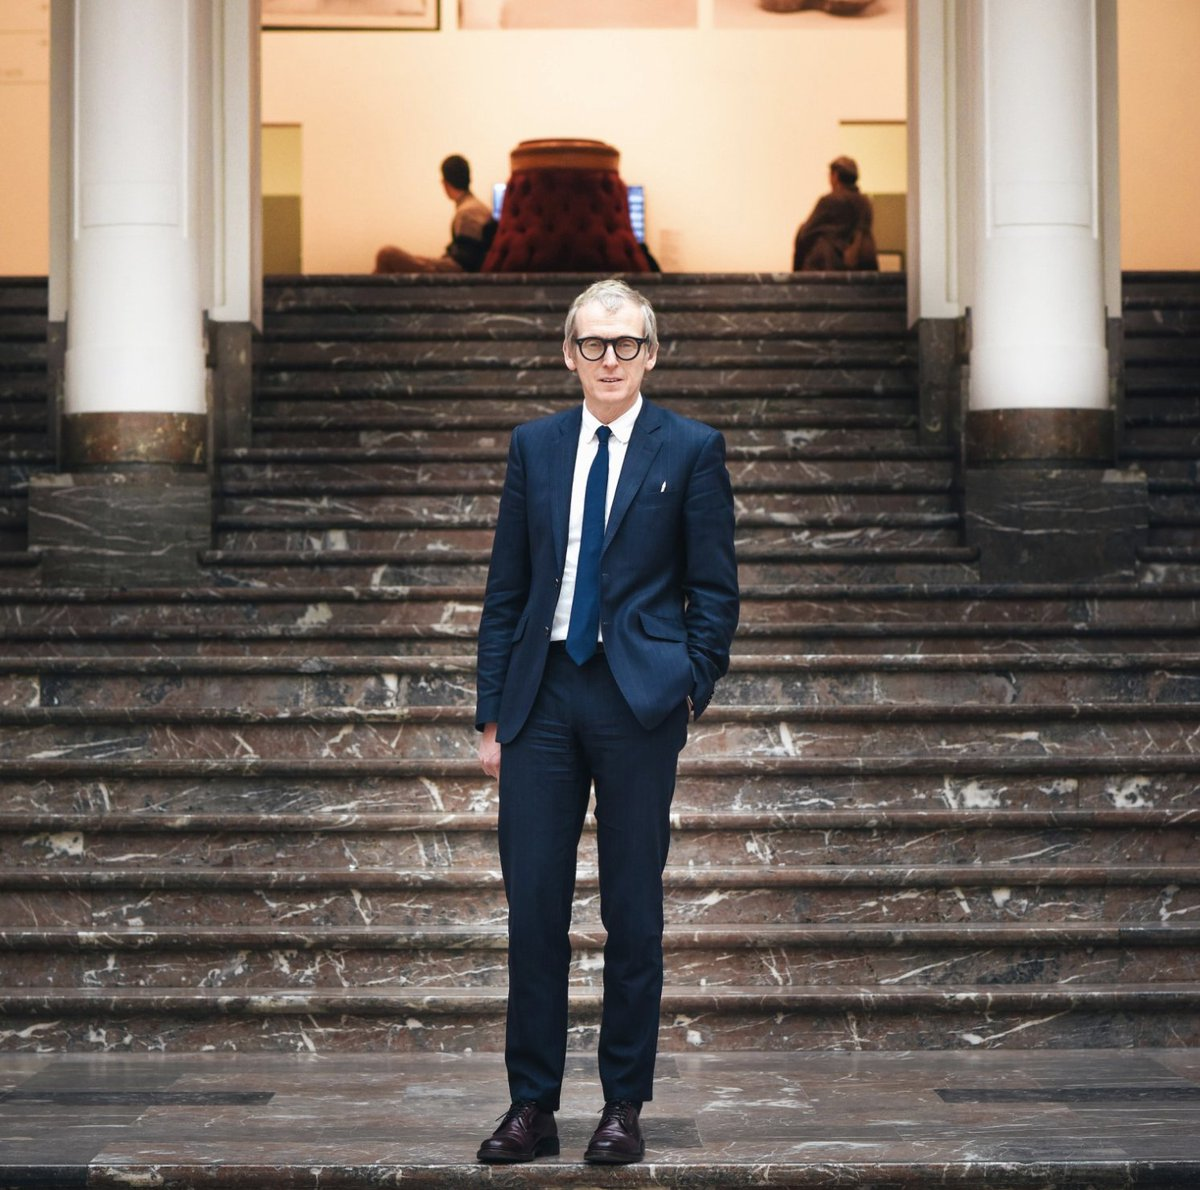 'If ever art could heal the world, the time is now.'  Paul Dujardin, CEO of @BOZARbrussels offers his insight and a few suggestions that could prove useful in planning a safe and sustainable exit from the #lockdown.  https://t.co/LHNU0bBxor https://t.co/Kn1wyGHkDp